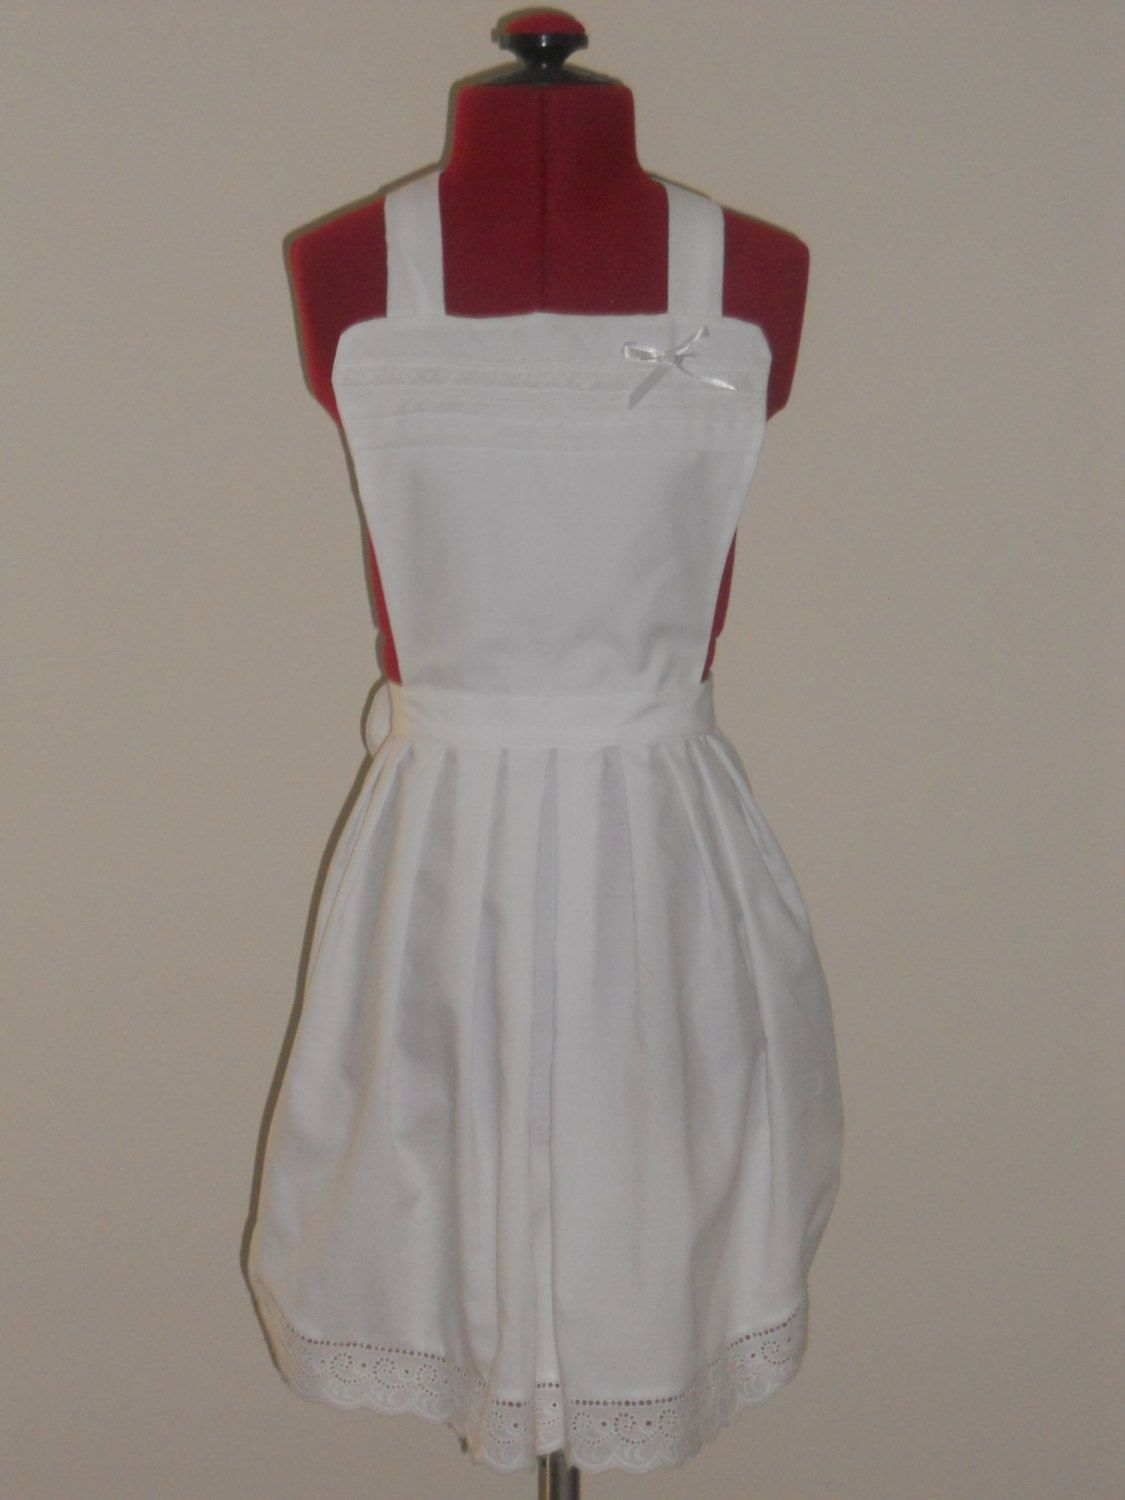 White apron in store - White Frilly Apron Google Search